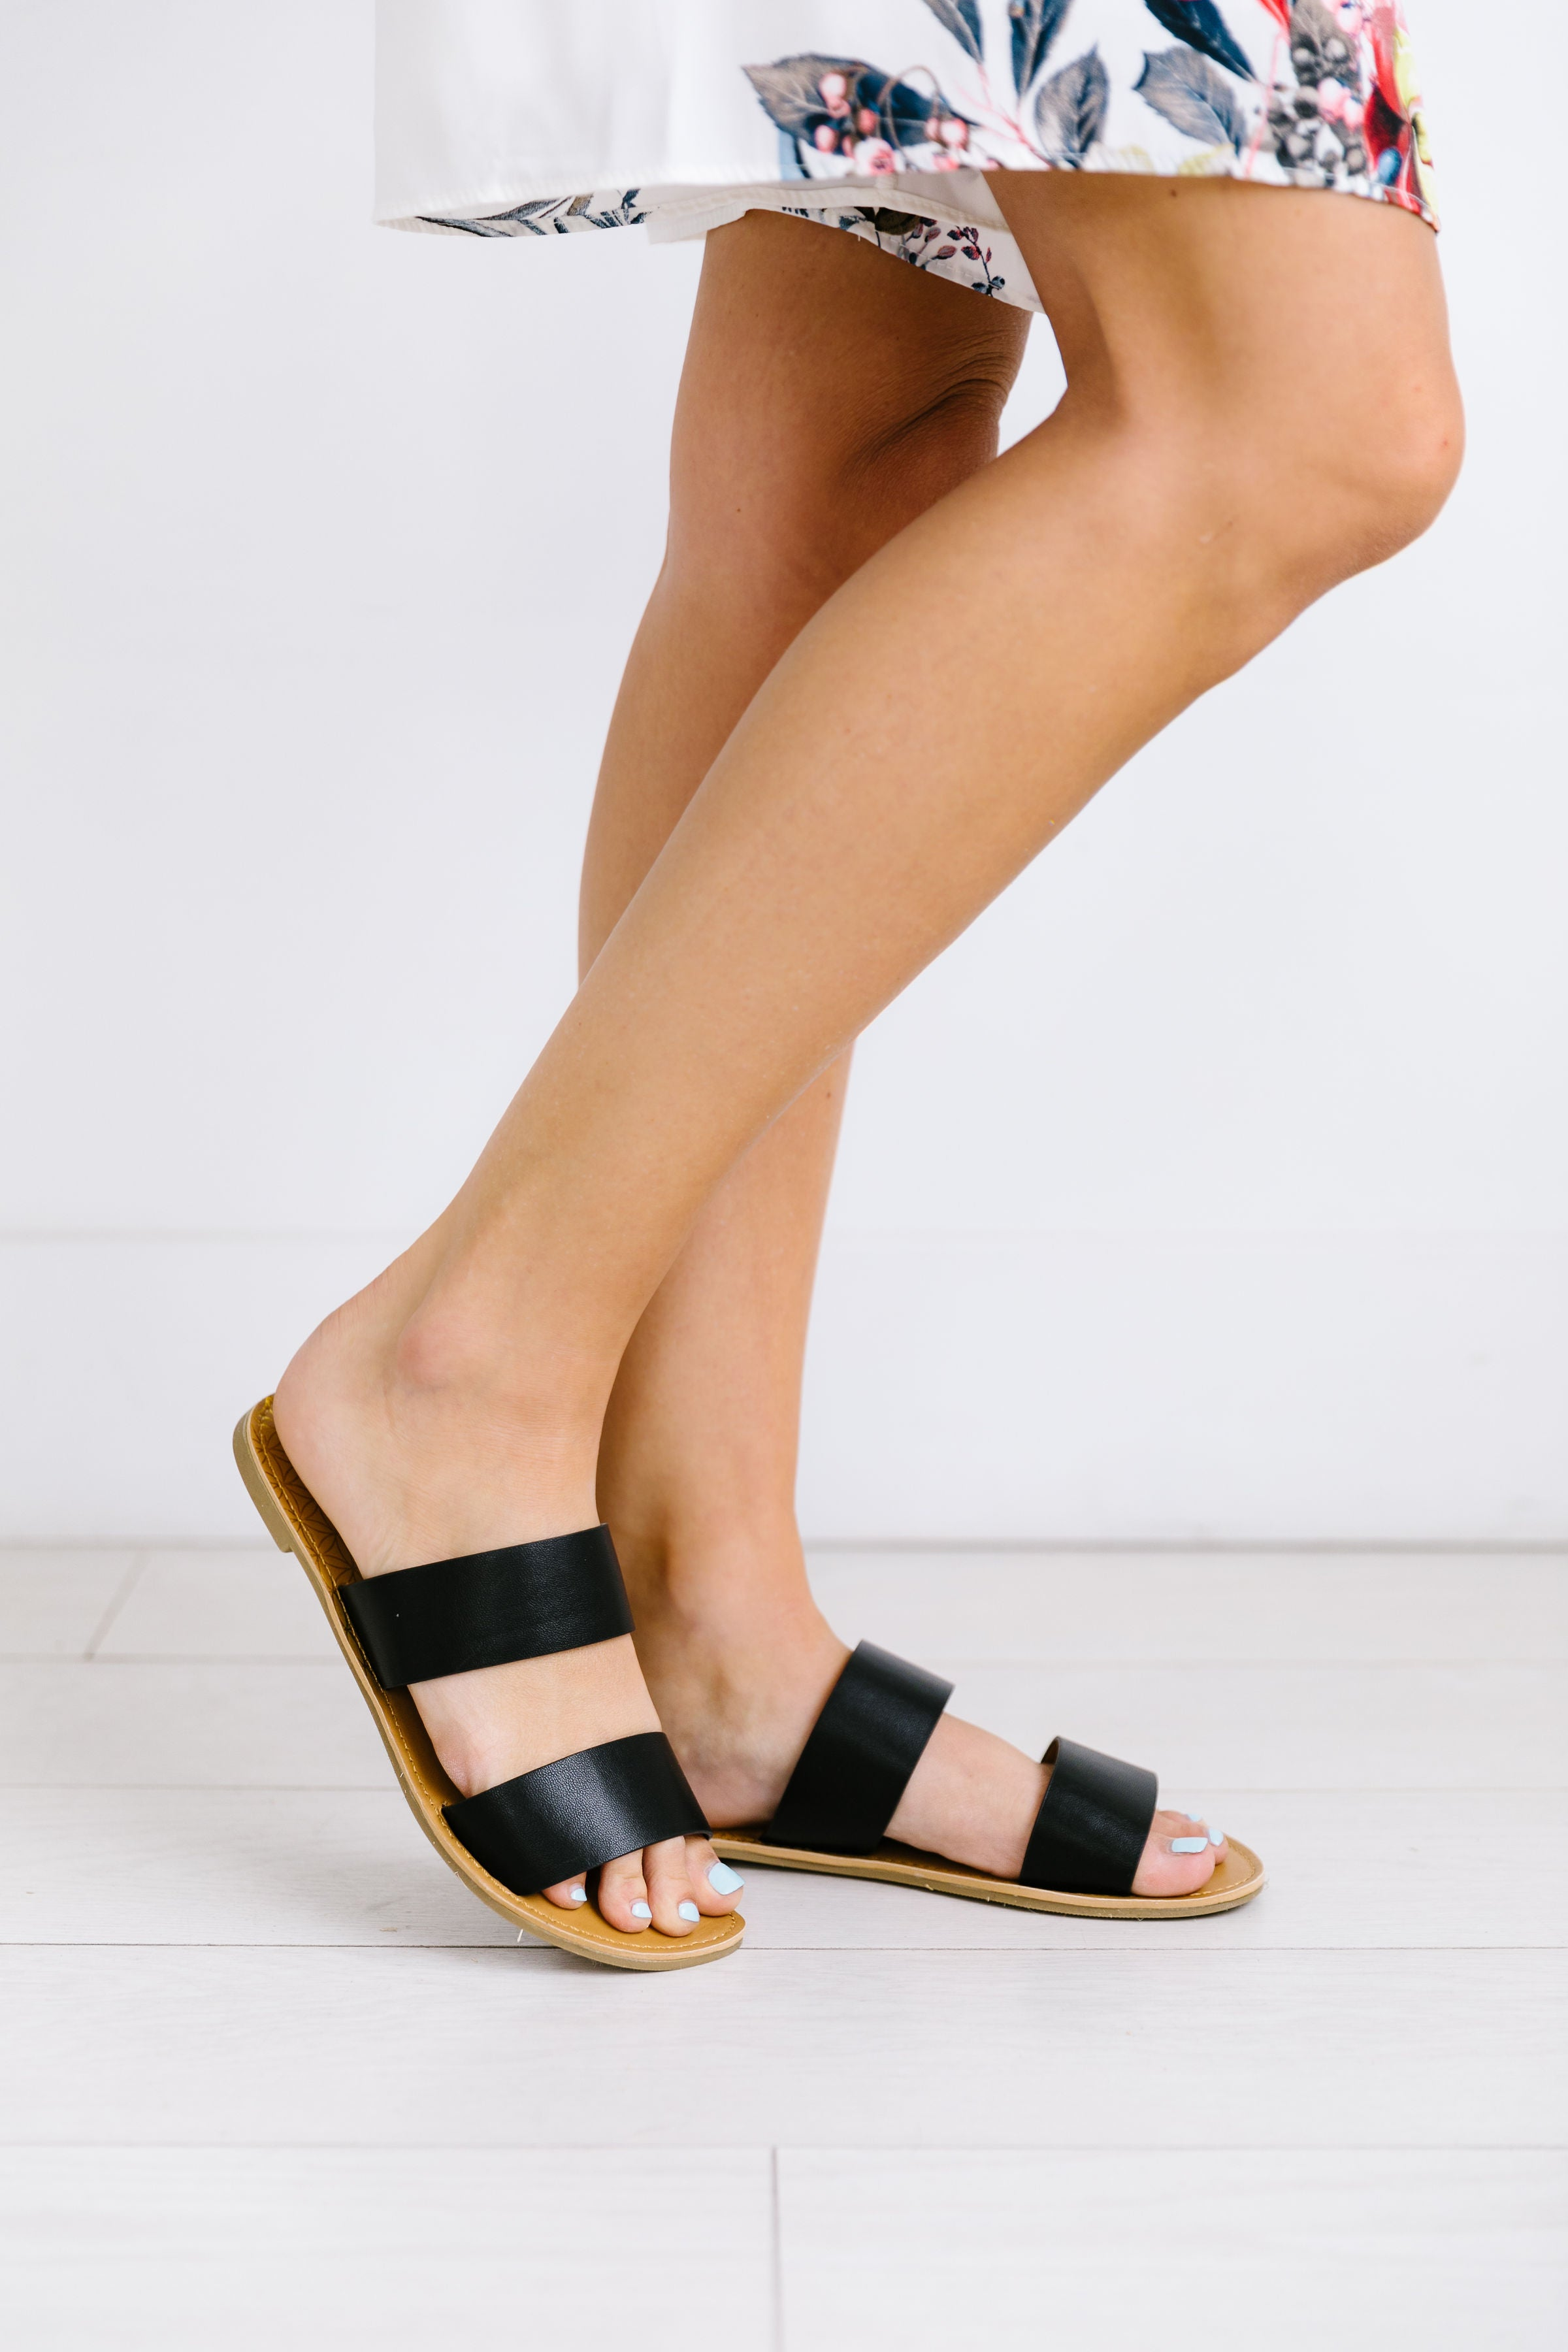 Double Time Black Sandals - ALL SALES FINAL